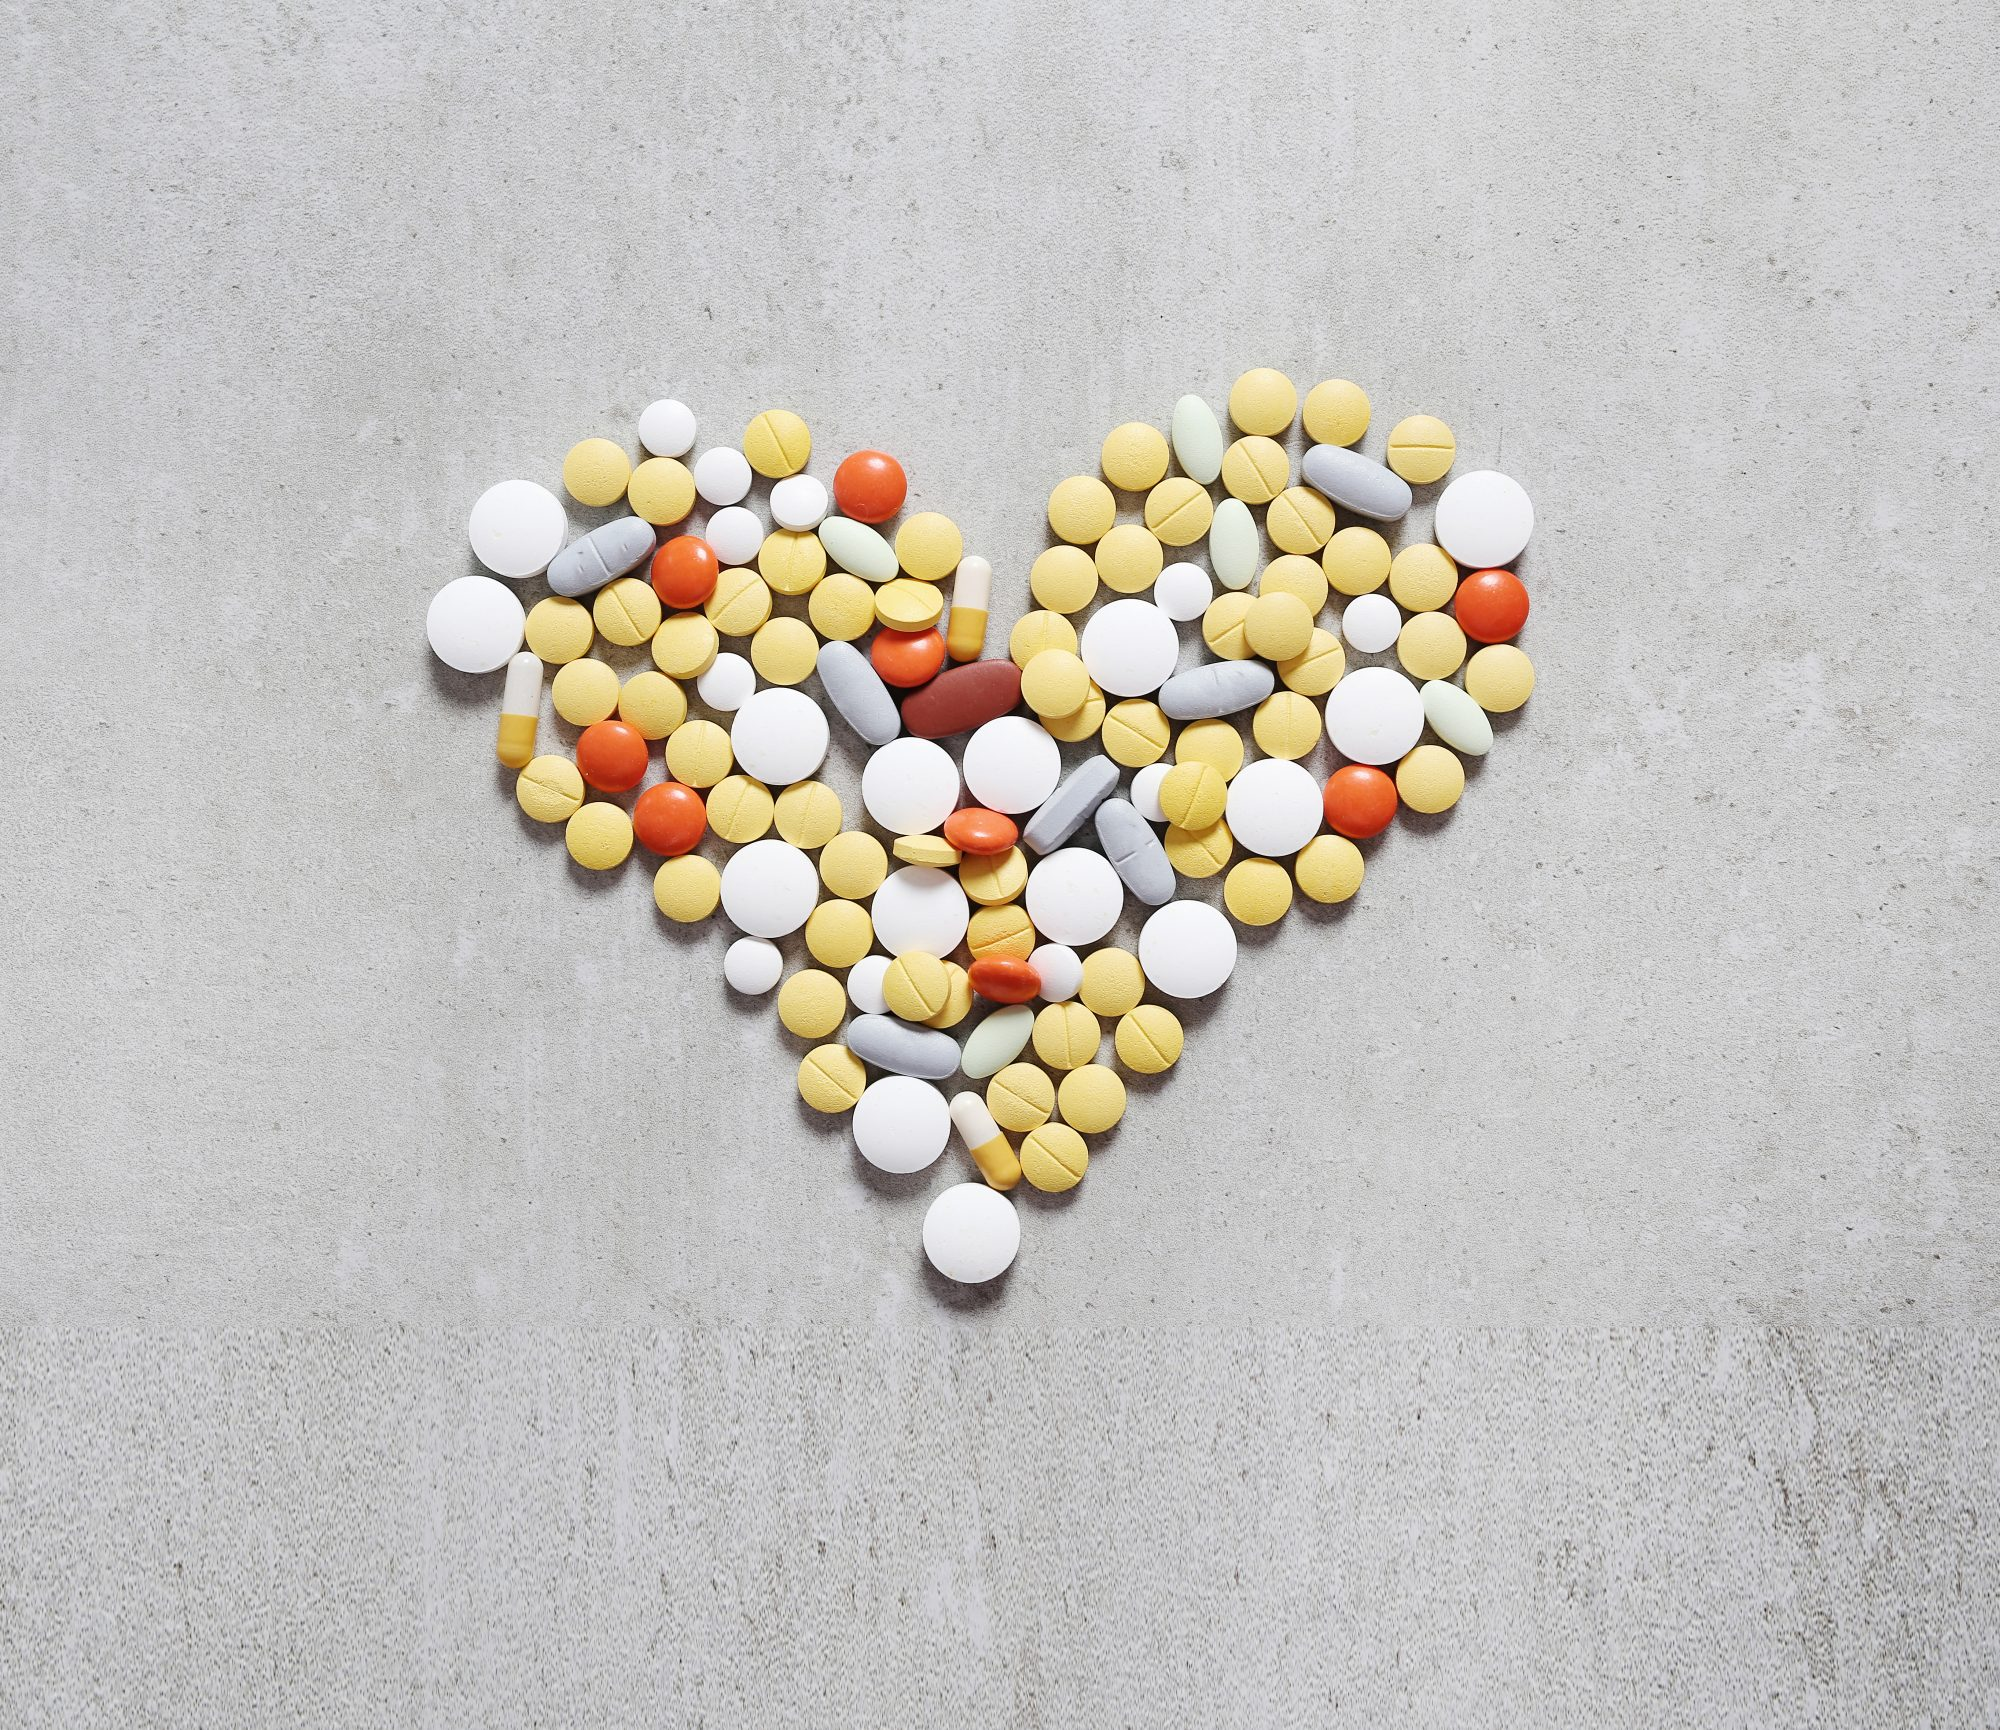 tailored-treatments-heart-failure-pills